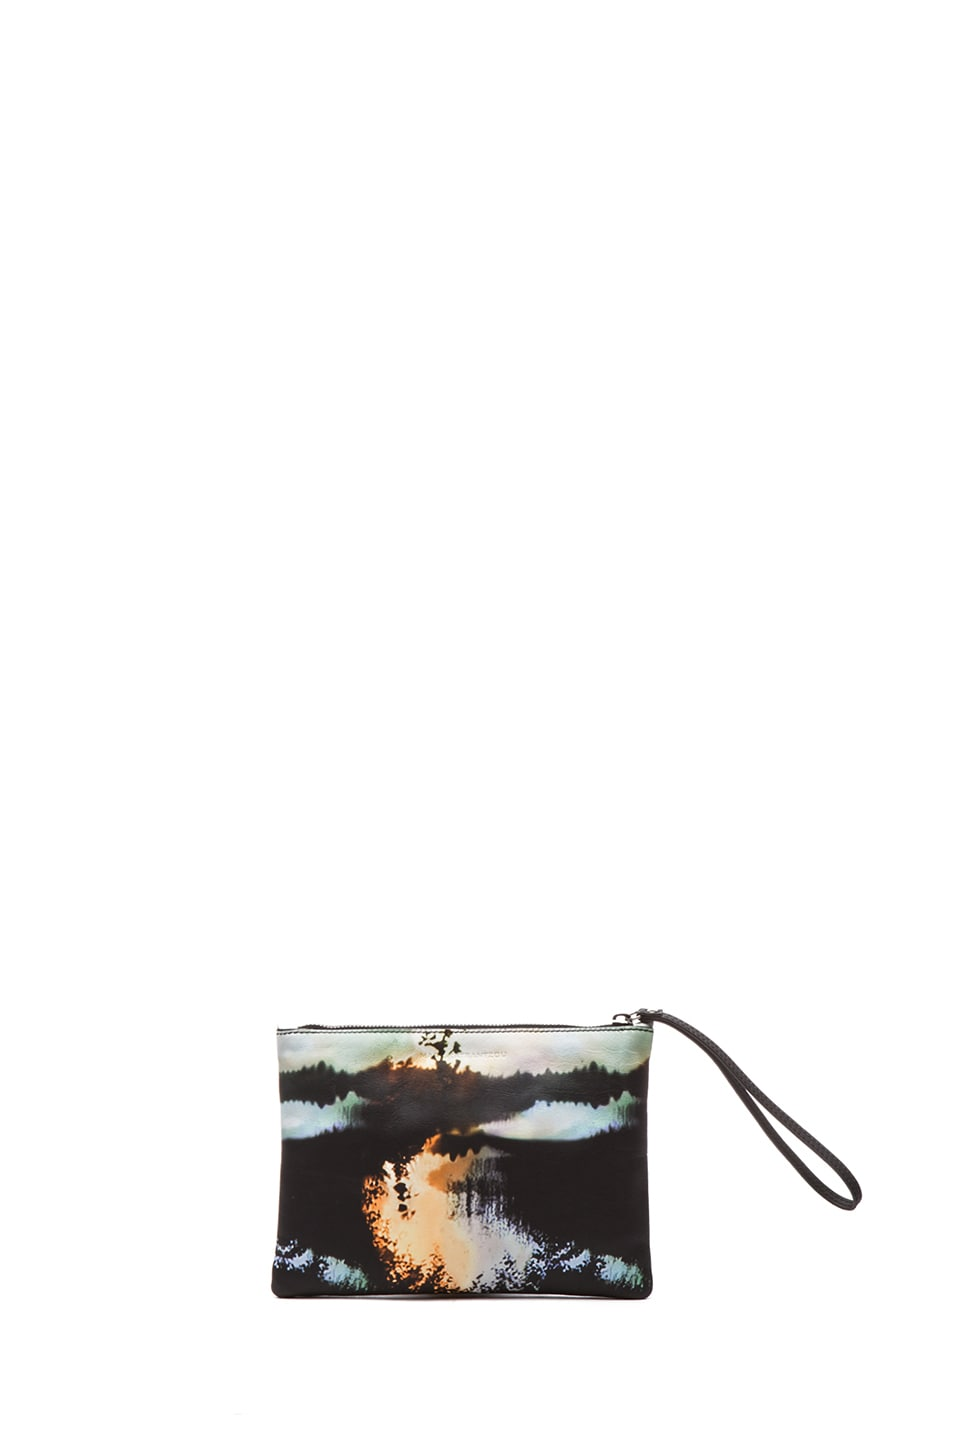 Image 2 of Mary Katrantzou Clutch in Woodstock Sunset